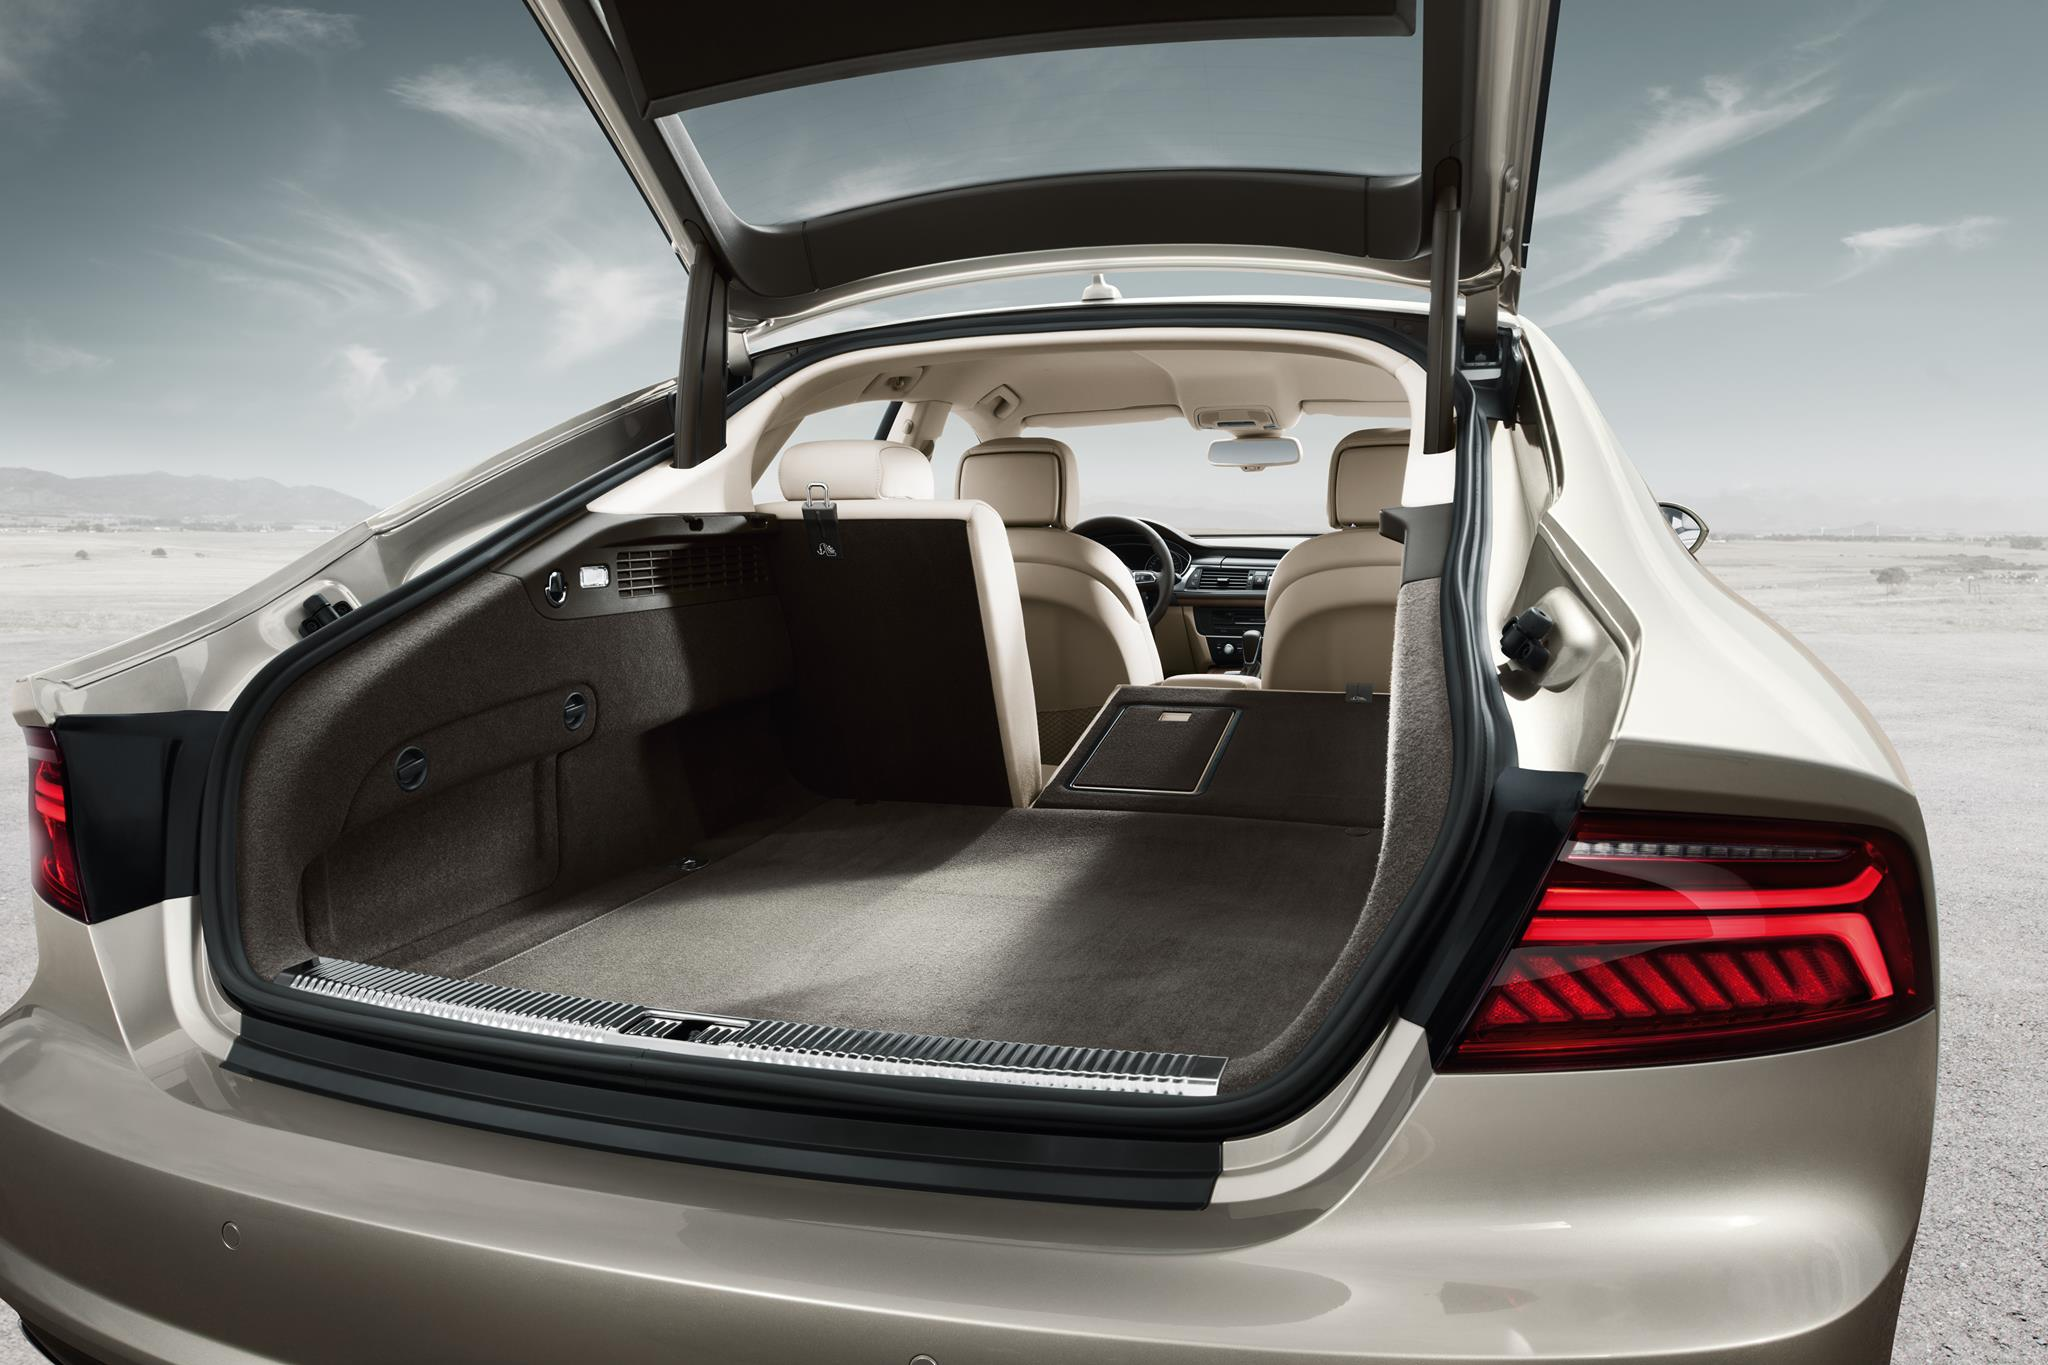 Jb Lighting Varyled A7 Zoom The 2015 Audi A7 Sportback Is Presence Redefined With New